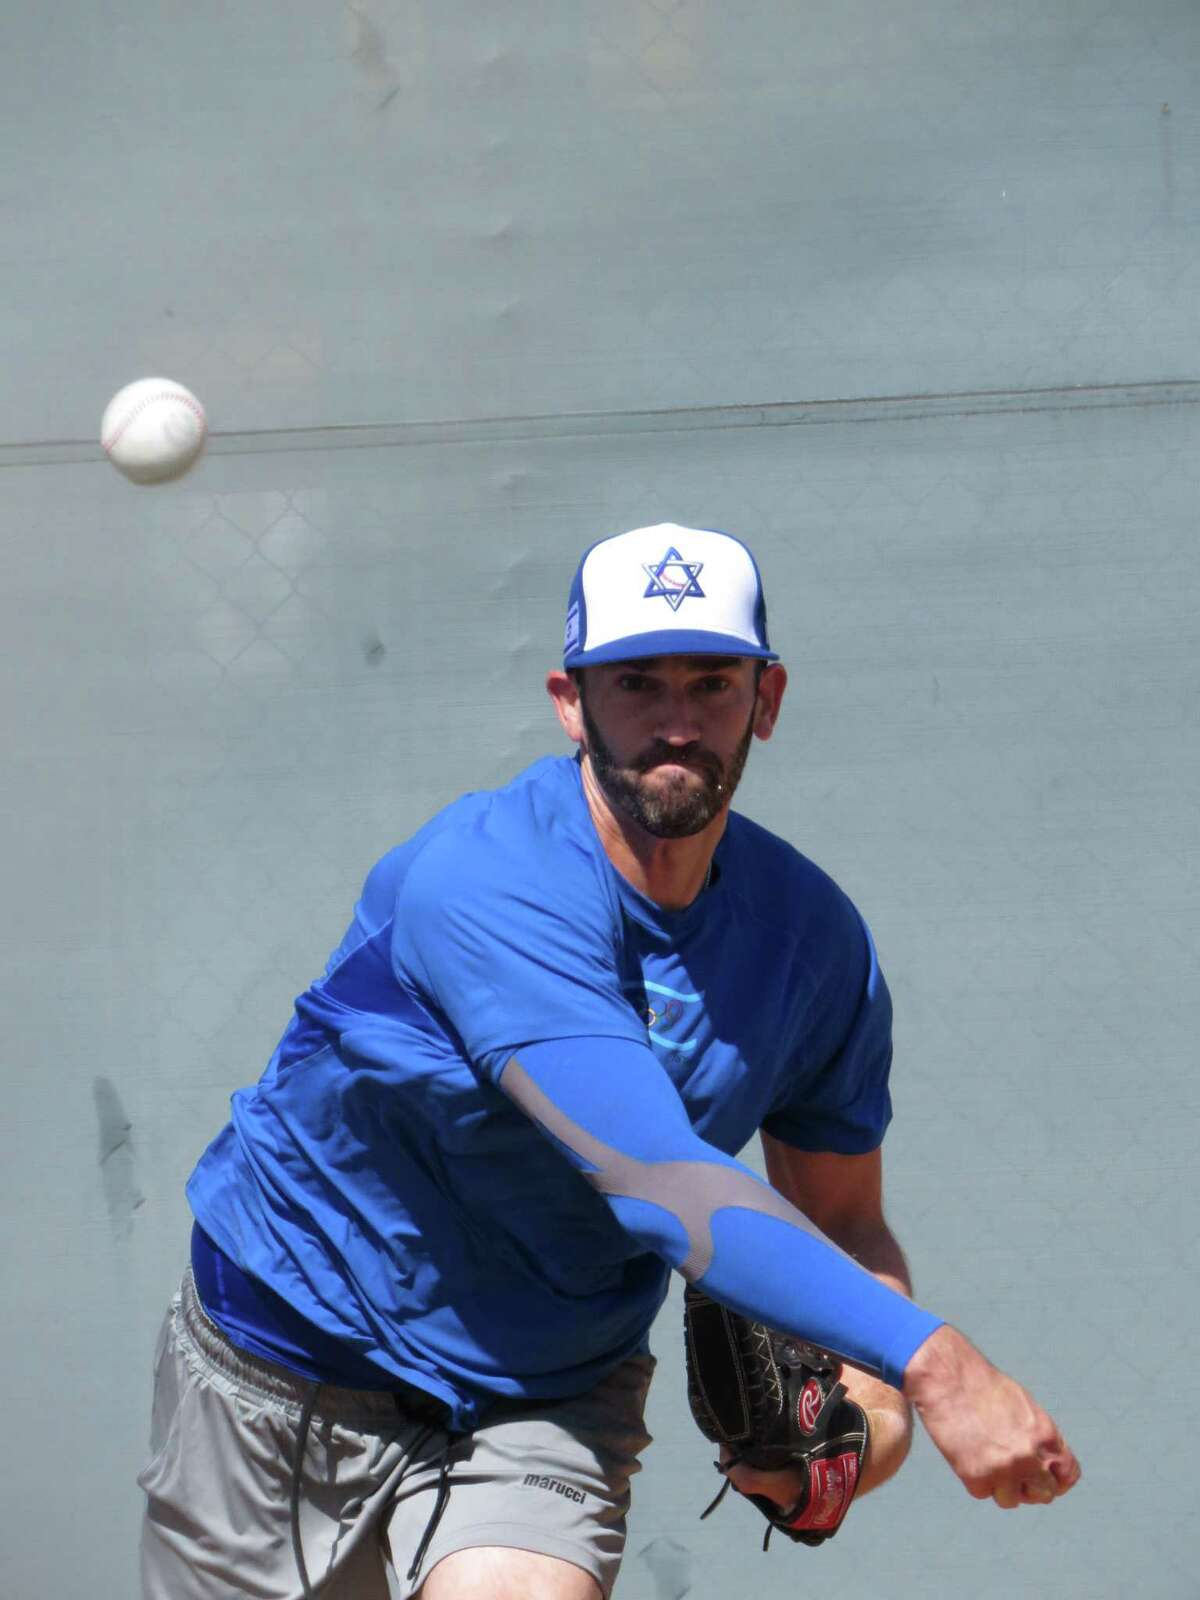 Josh Zeid has played for Team Israel since the team's inception in 2011. He came out of retirement from the MLB to play on its debut Olympic team this summer.